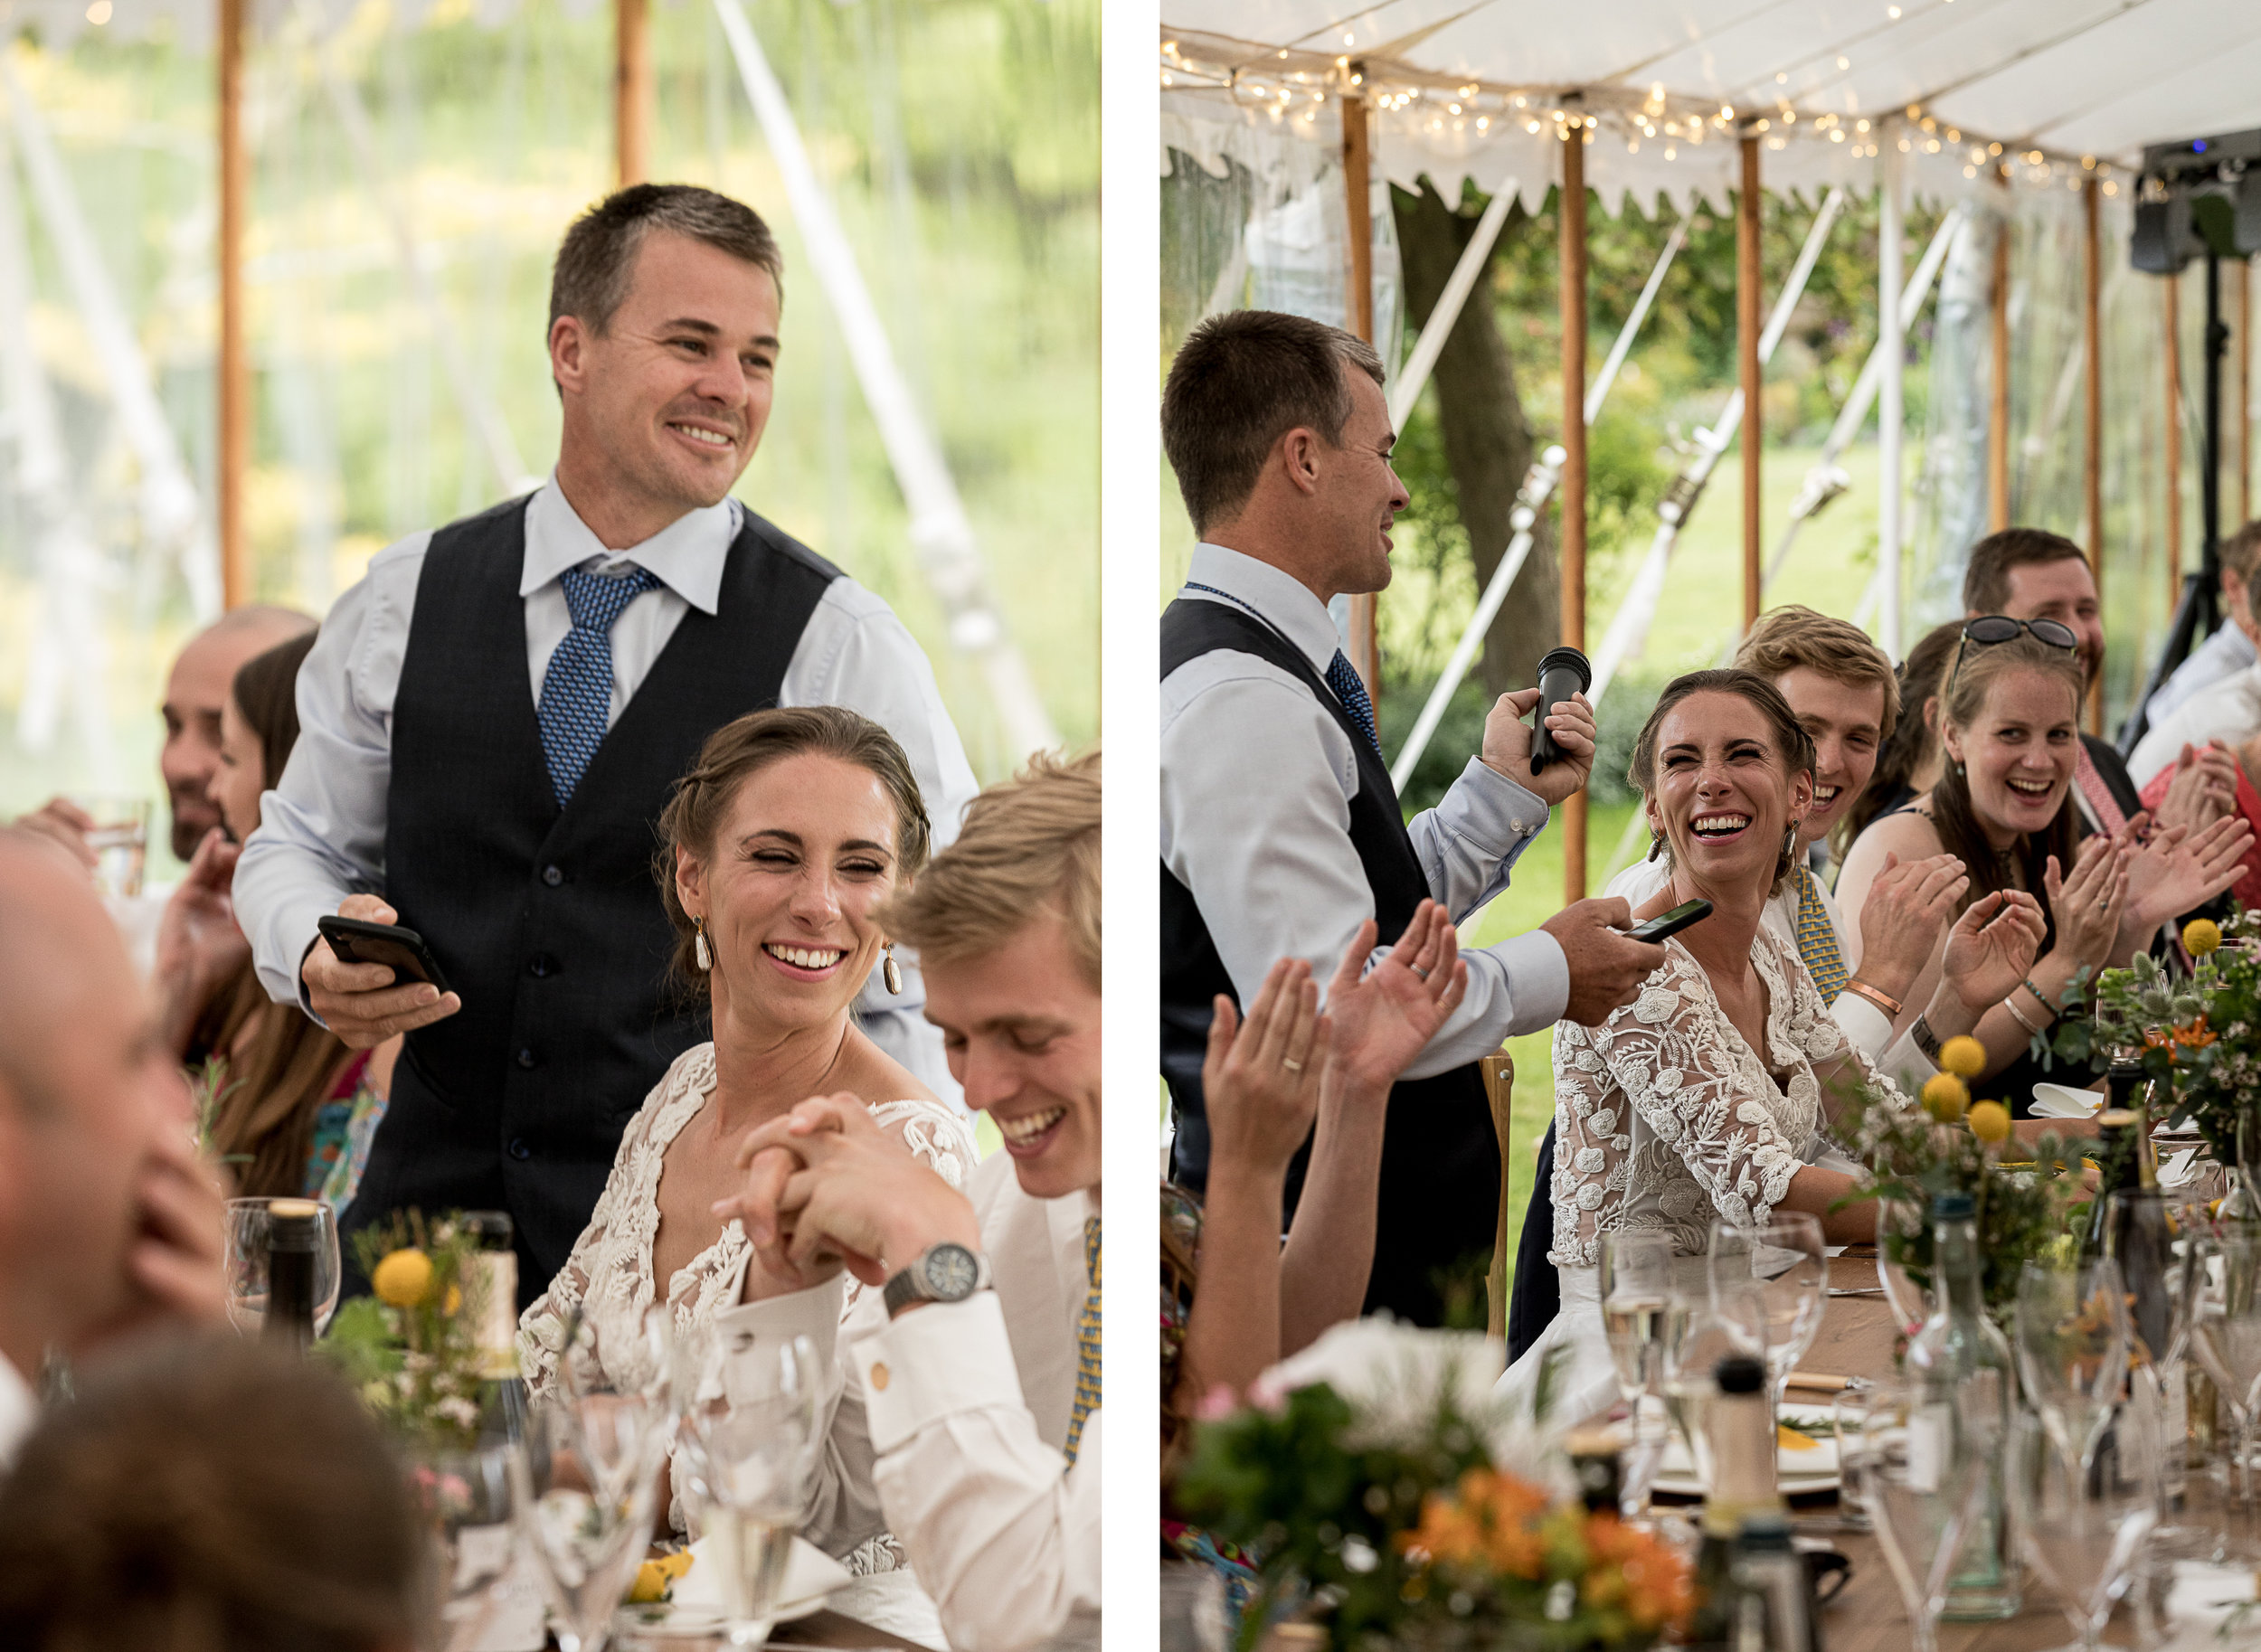 english-wedding-photographer-laughing-bride-and-groom.jpg